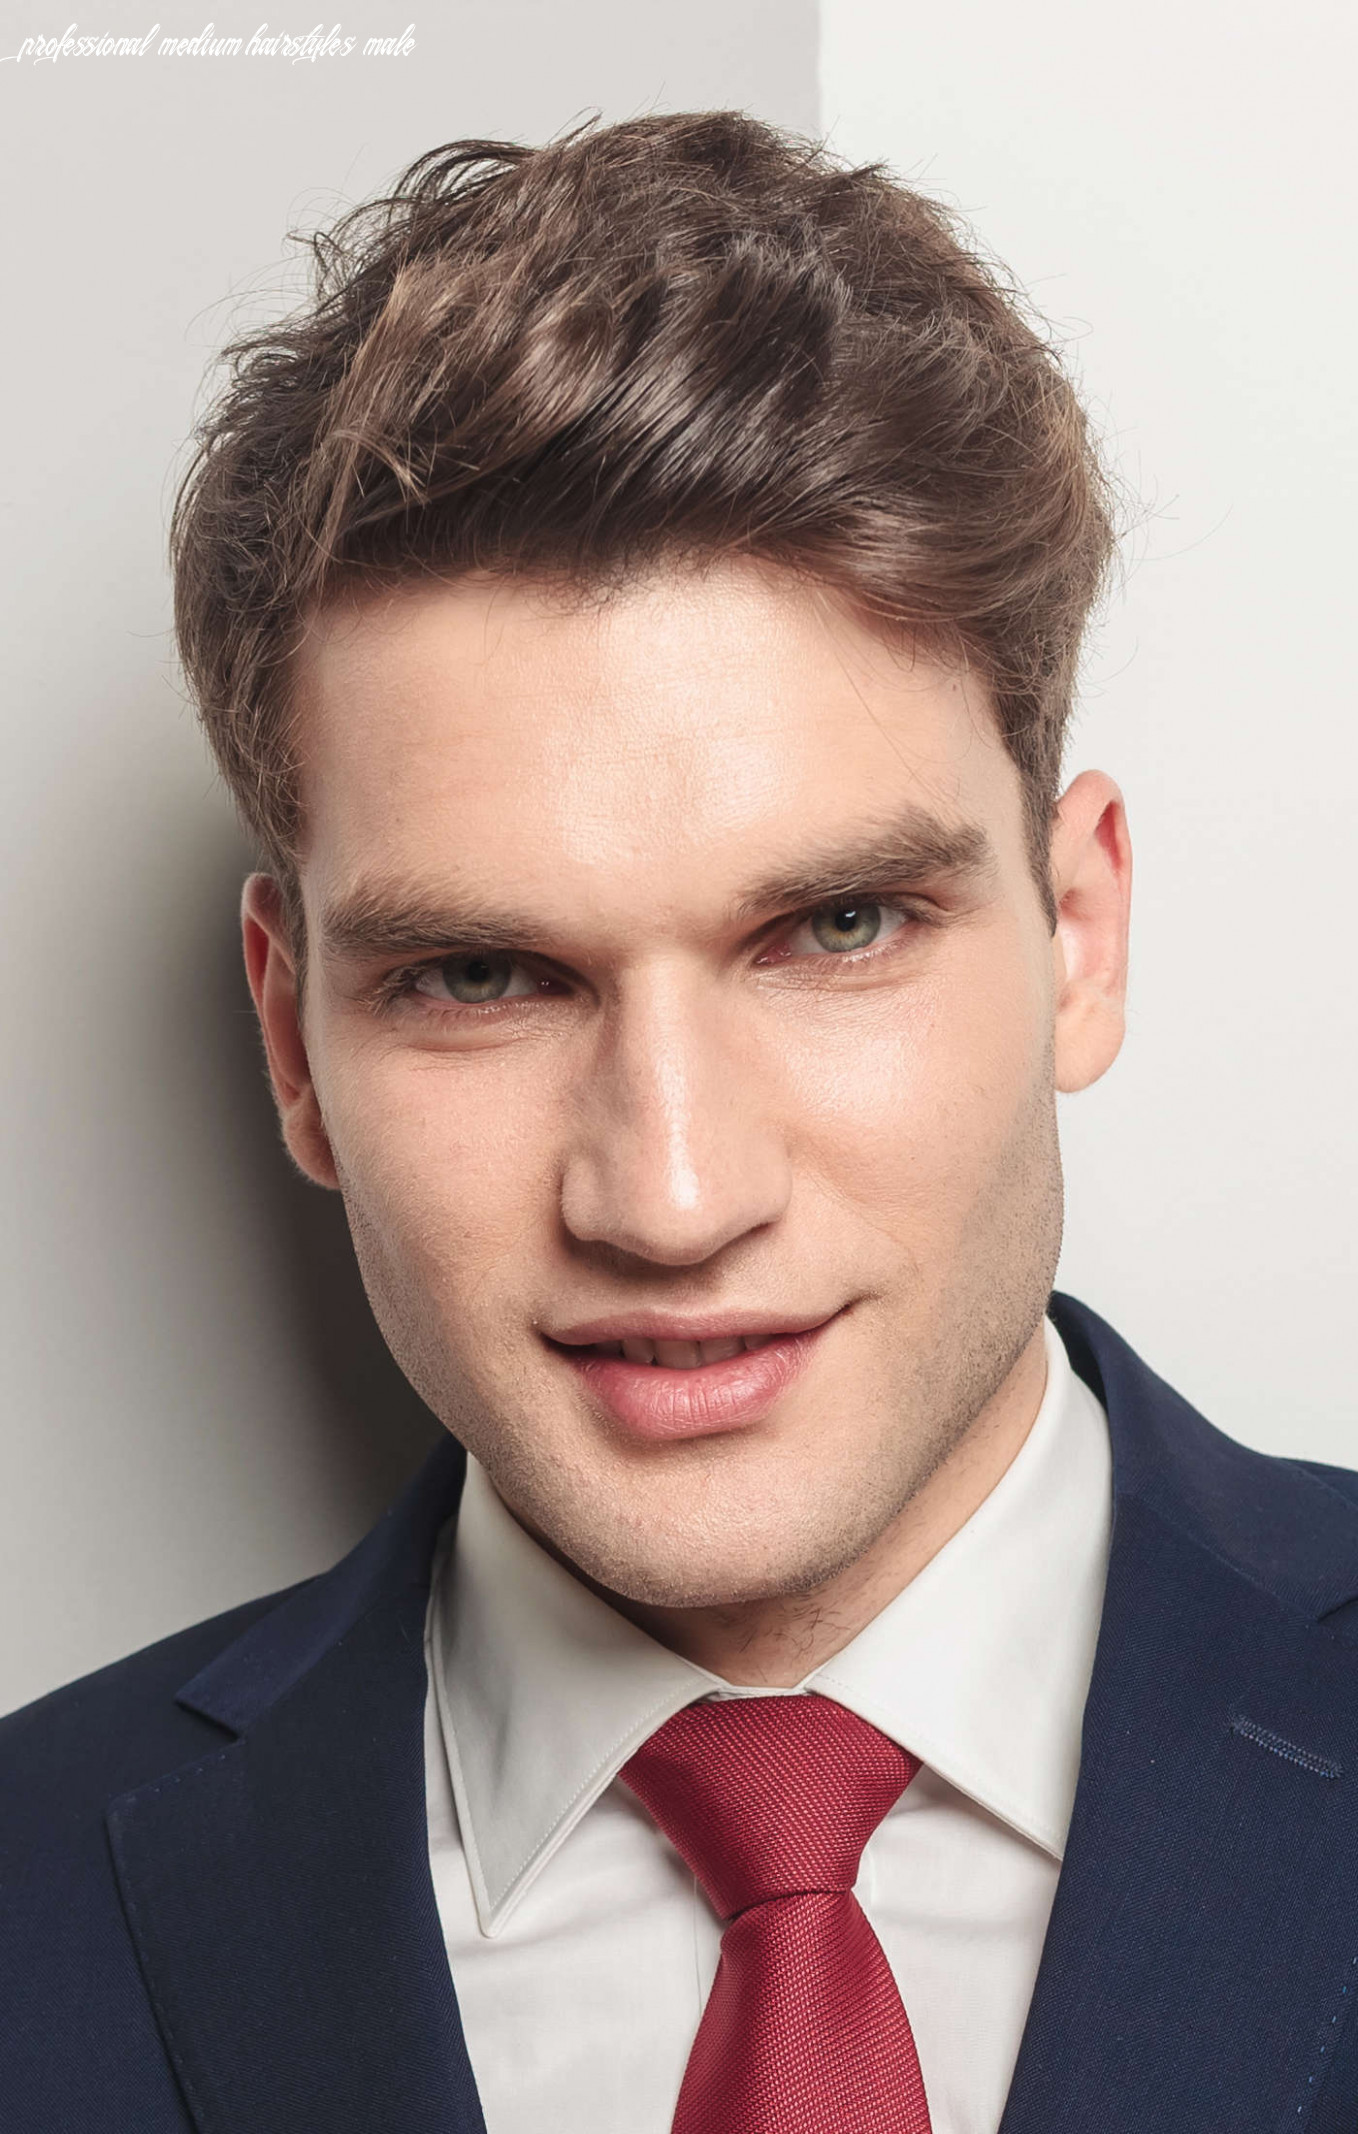 Top 12 business hairstyles for men professional medium hairstyles male